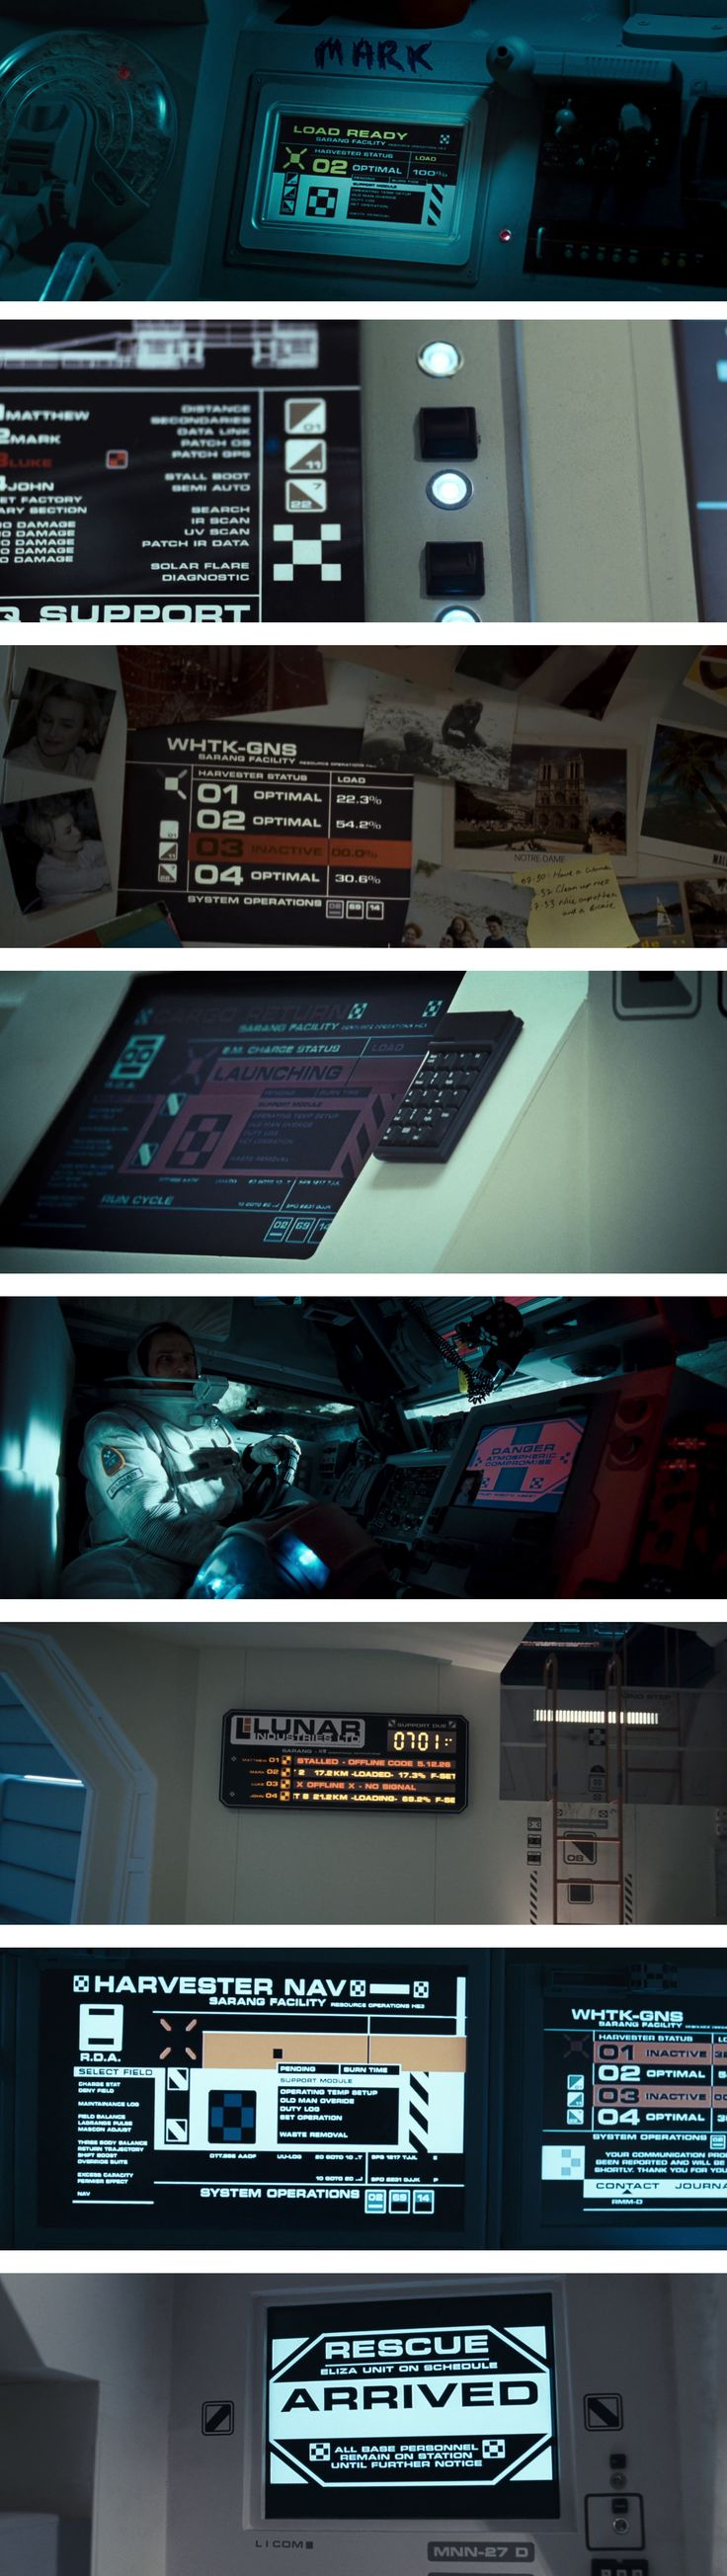 "Status UI (User Interface) for the film ""Moon"" Copyright Lunar Industries Limited. – Screenshots taken by Pinterest user: @fabianzaf"